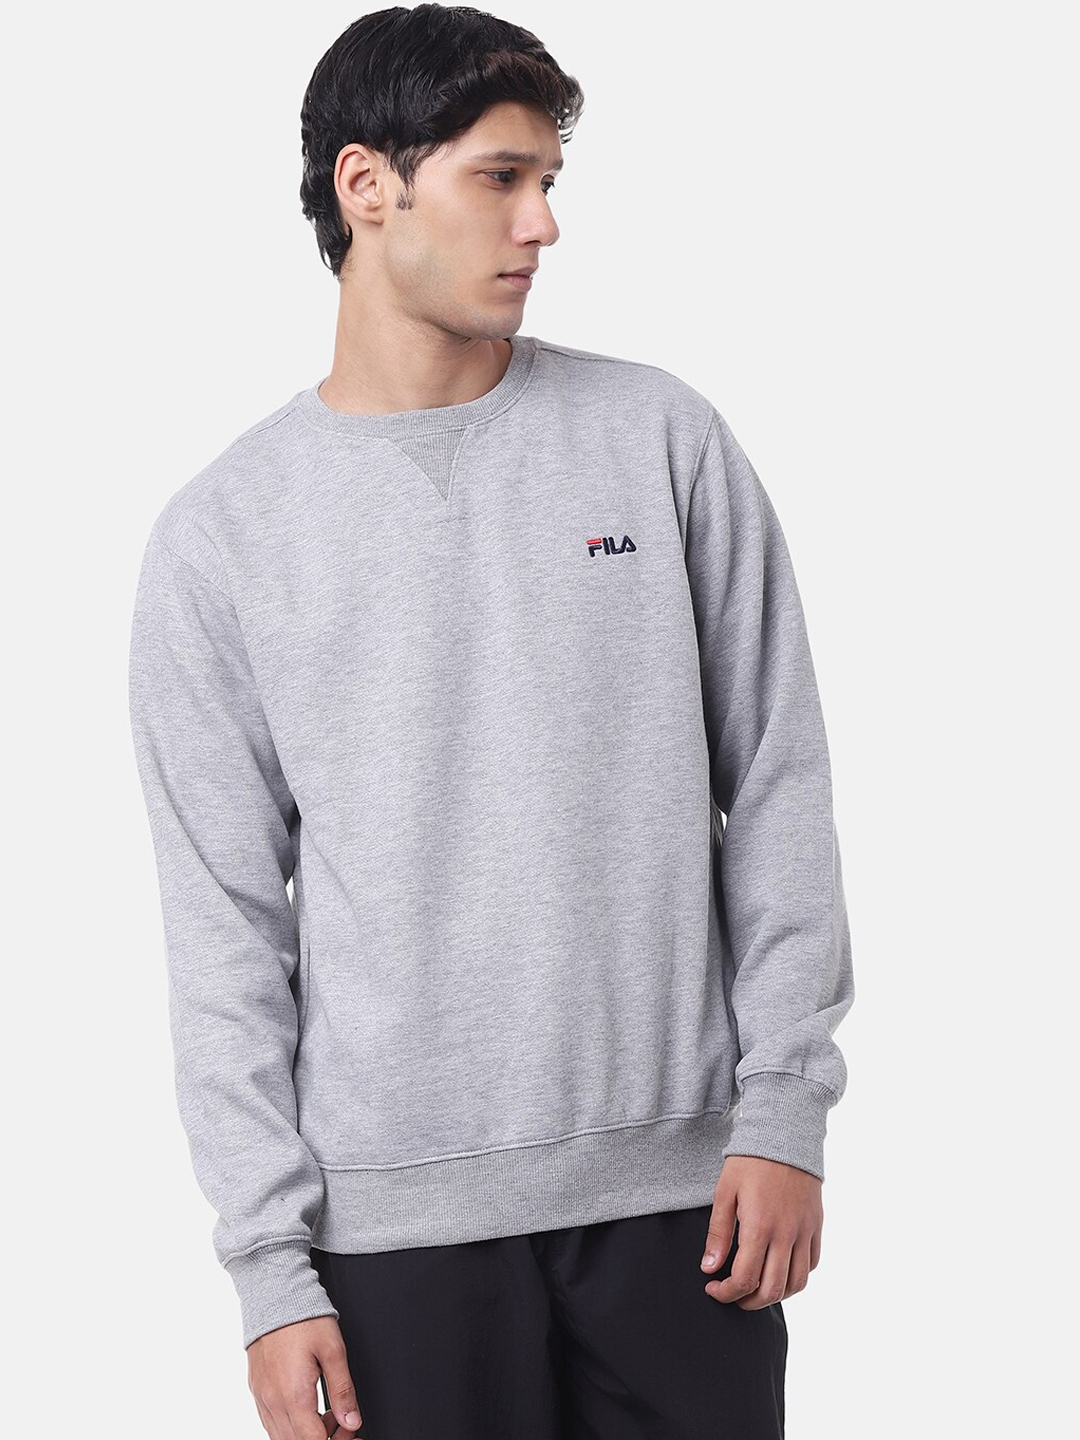 FILA Men Grey Solid Sweatshirt